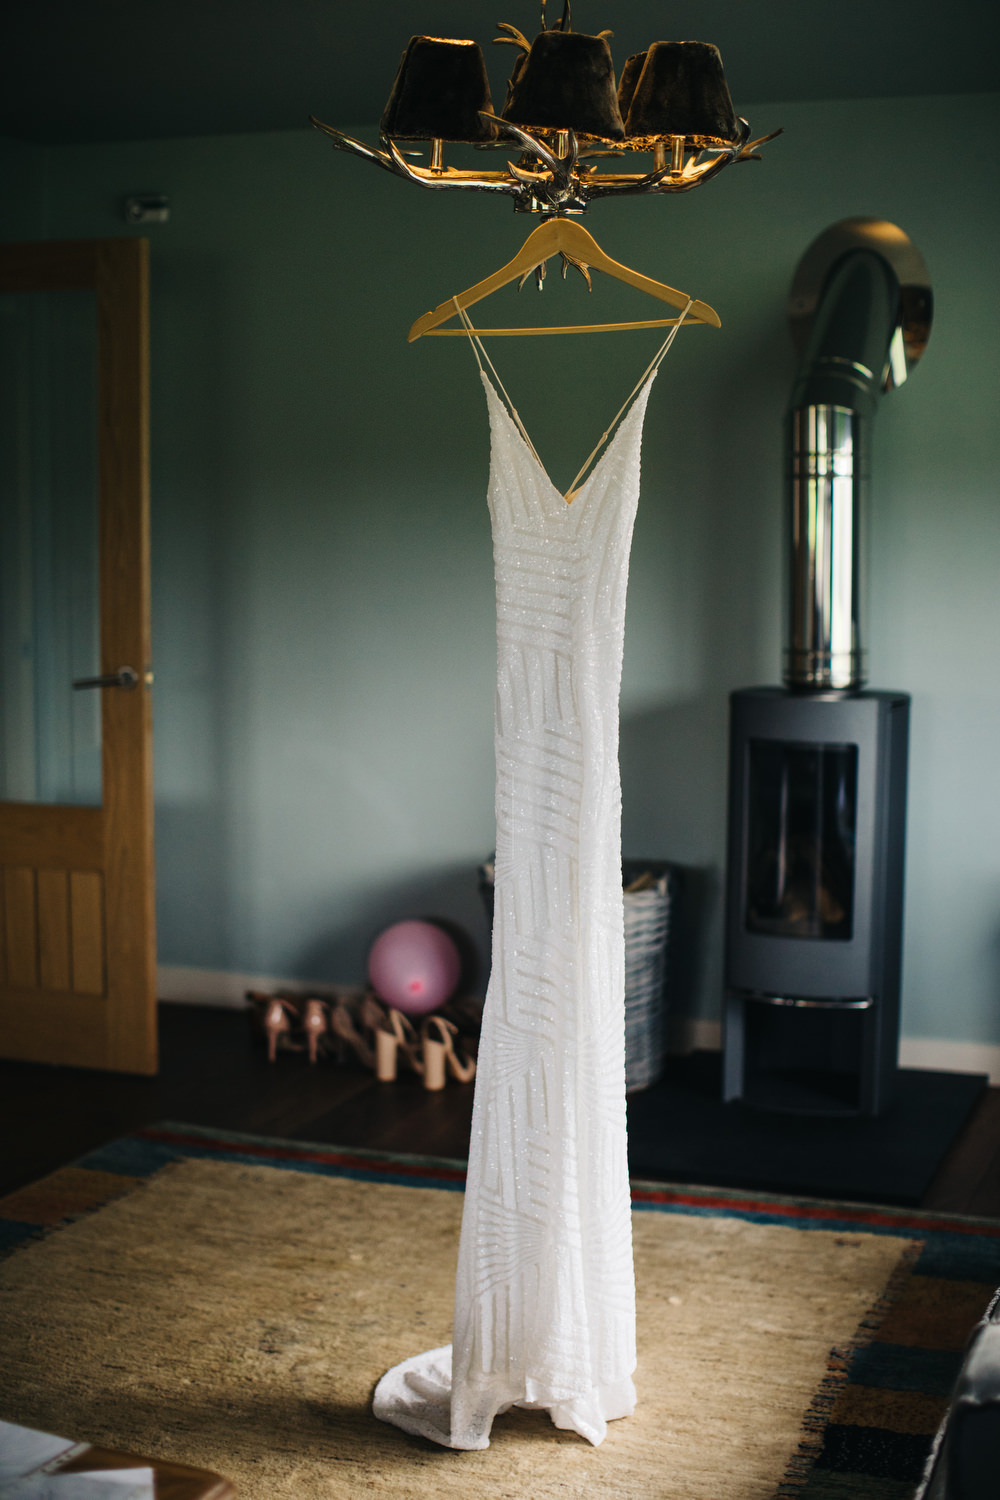 Sequin Dress Bride Bridal Gown Spaghetti Straps Spilt Skirt Deer Park Country House Hotel Wedding Richard Skins Photography